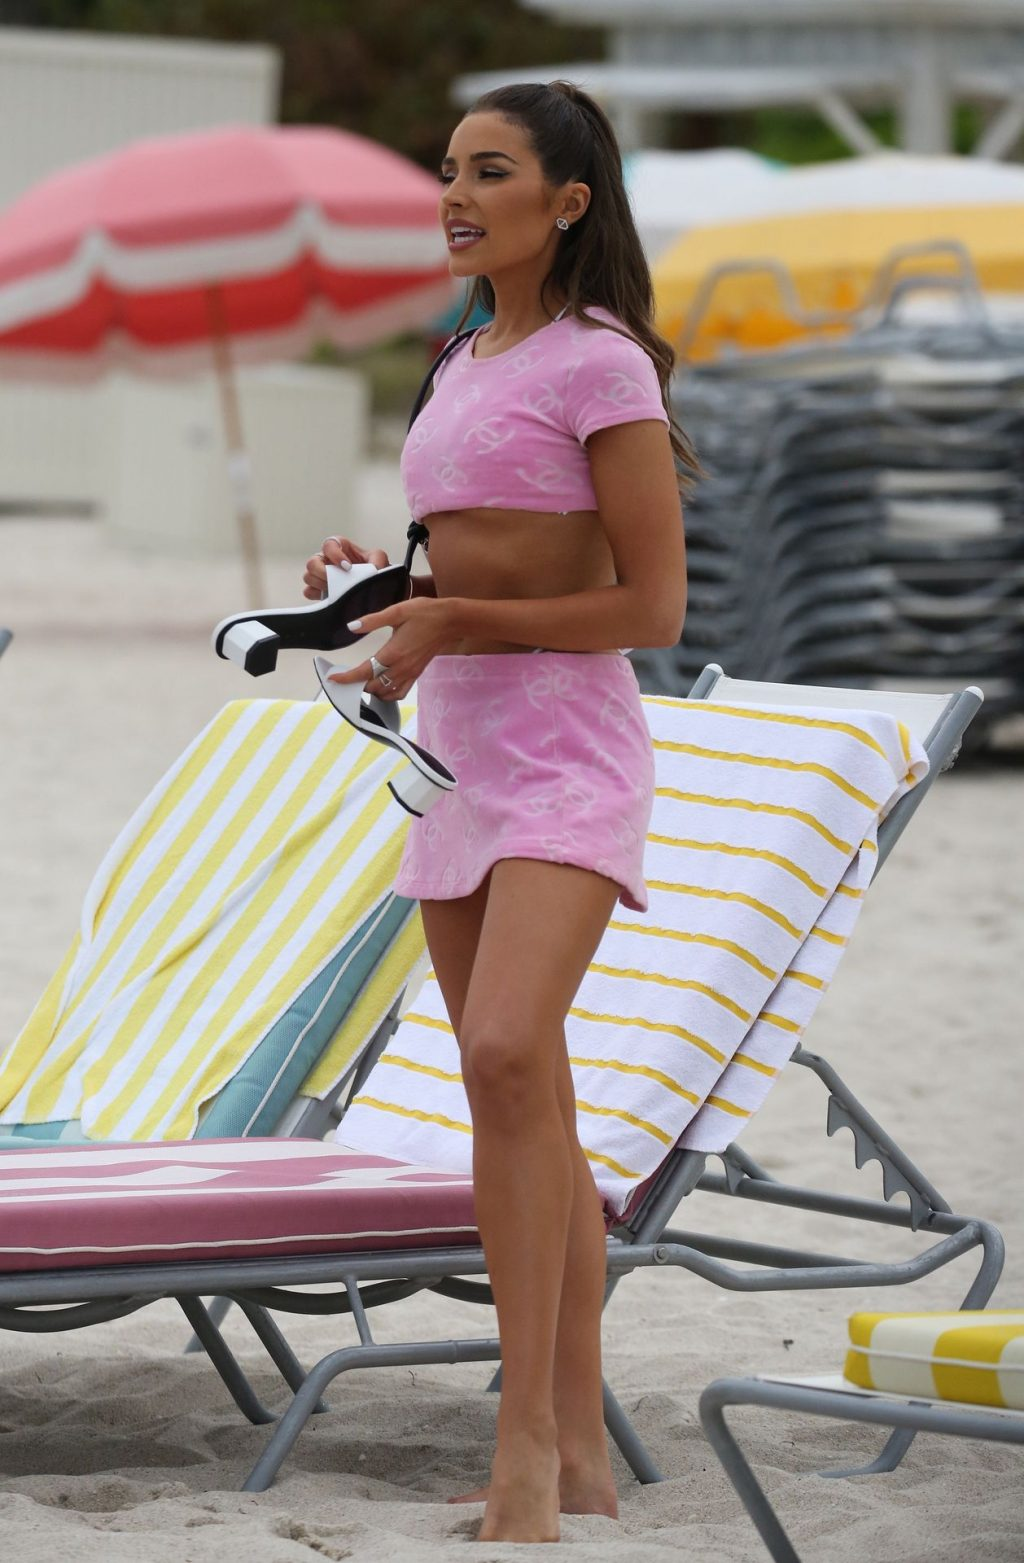 Olivia Culpo Wears a Revealing Chanel Crop Top and mini Skirt in Miami (50 Photos)